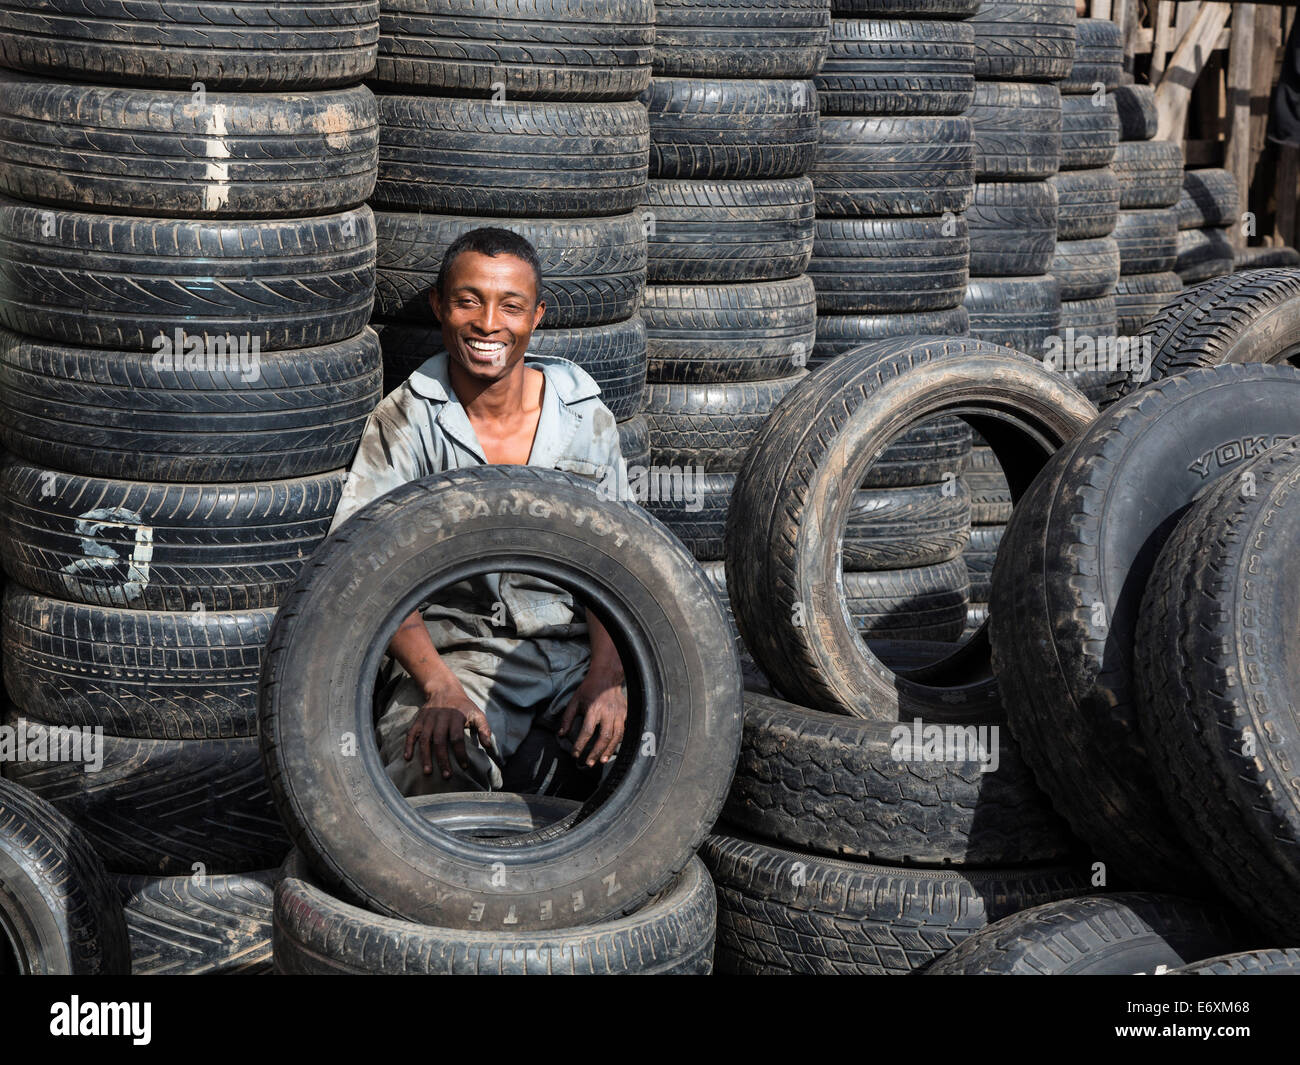 Tyre dealer, Antananarivo, capital of Madagascar, Africa - Stock Image